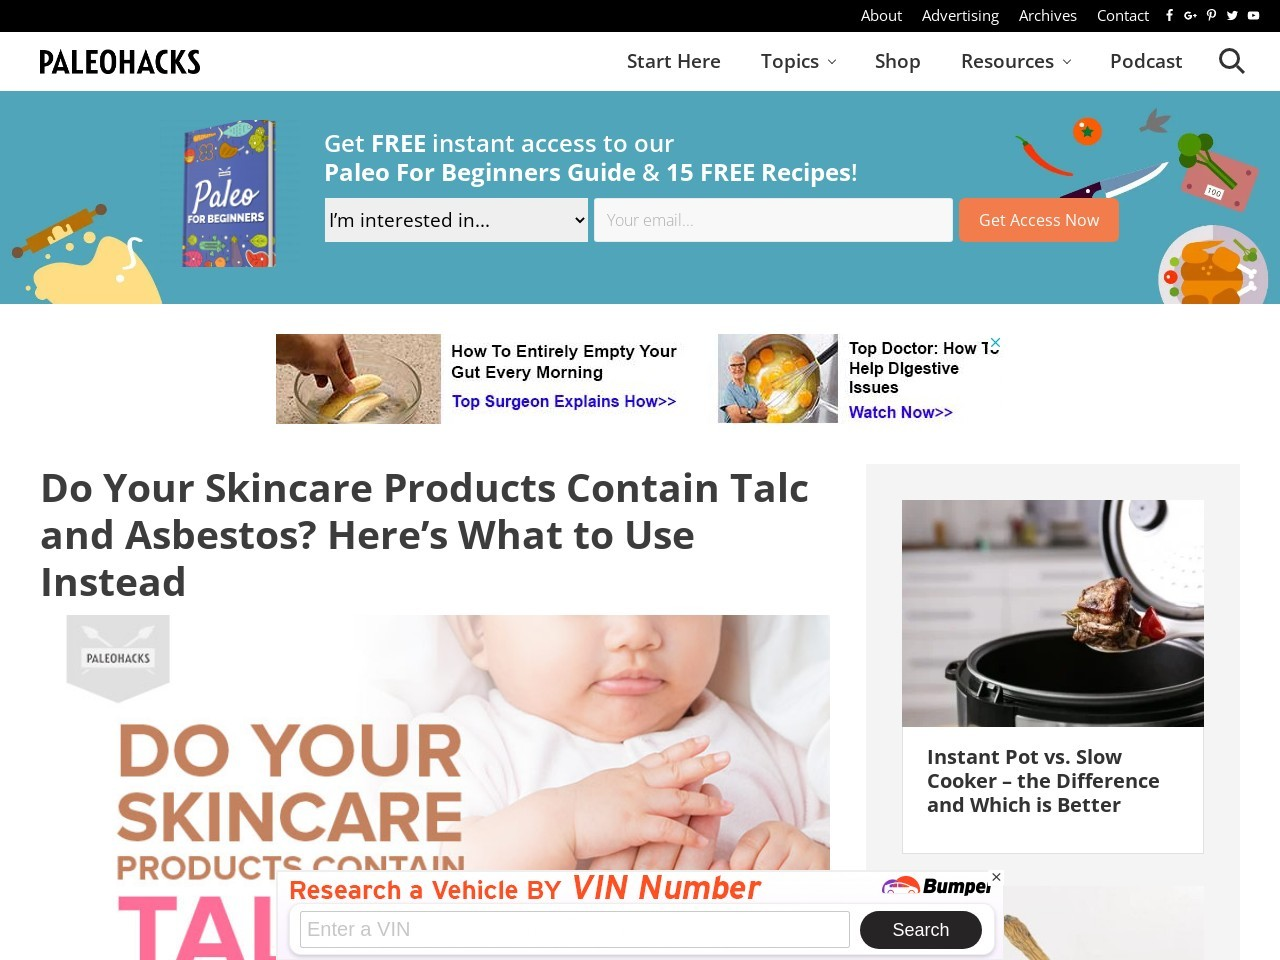 Do Your Skincare Products Contain Talc and Asbestos? Here's What to Use Instead